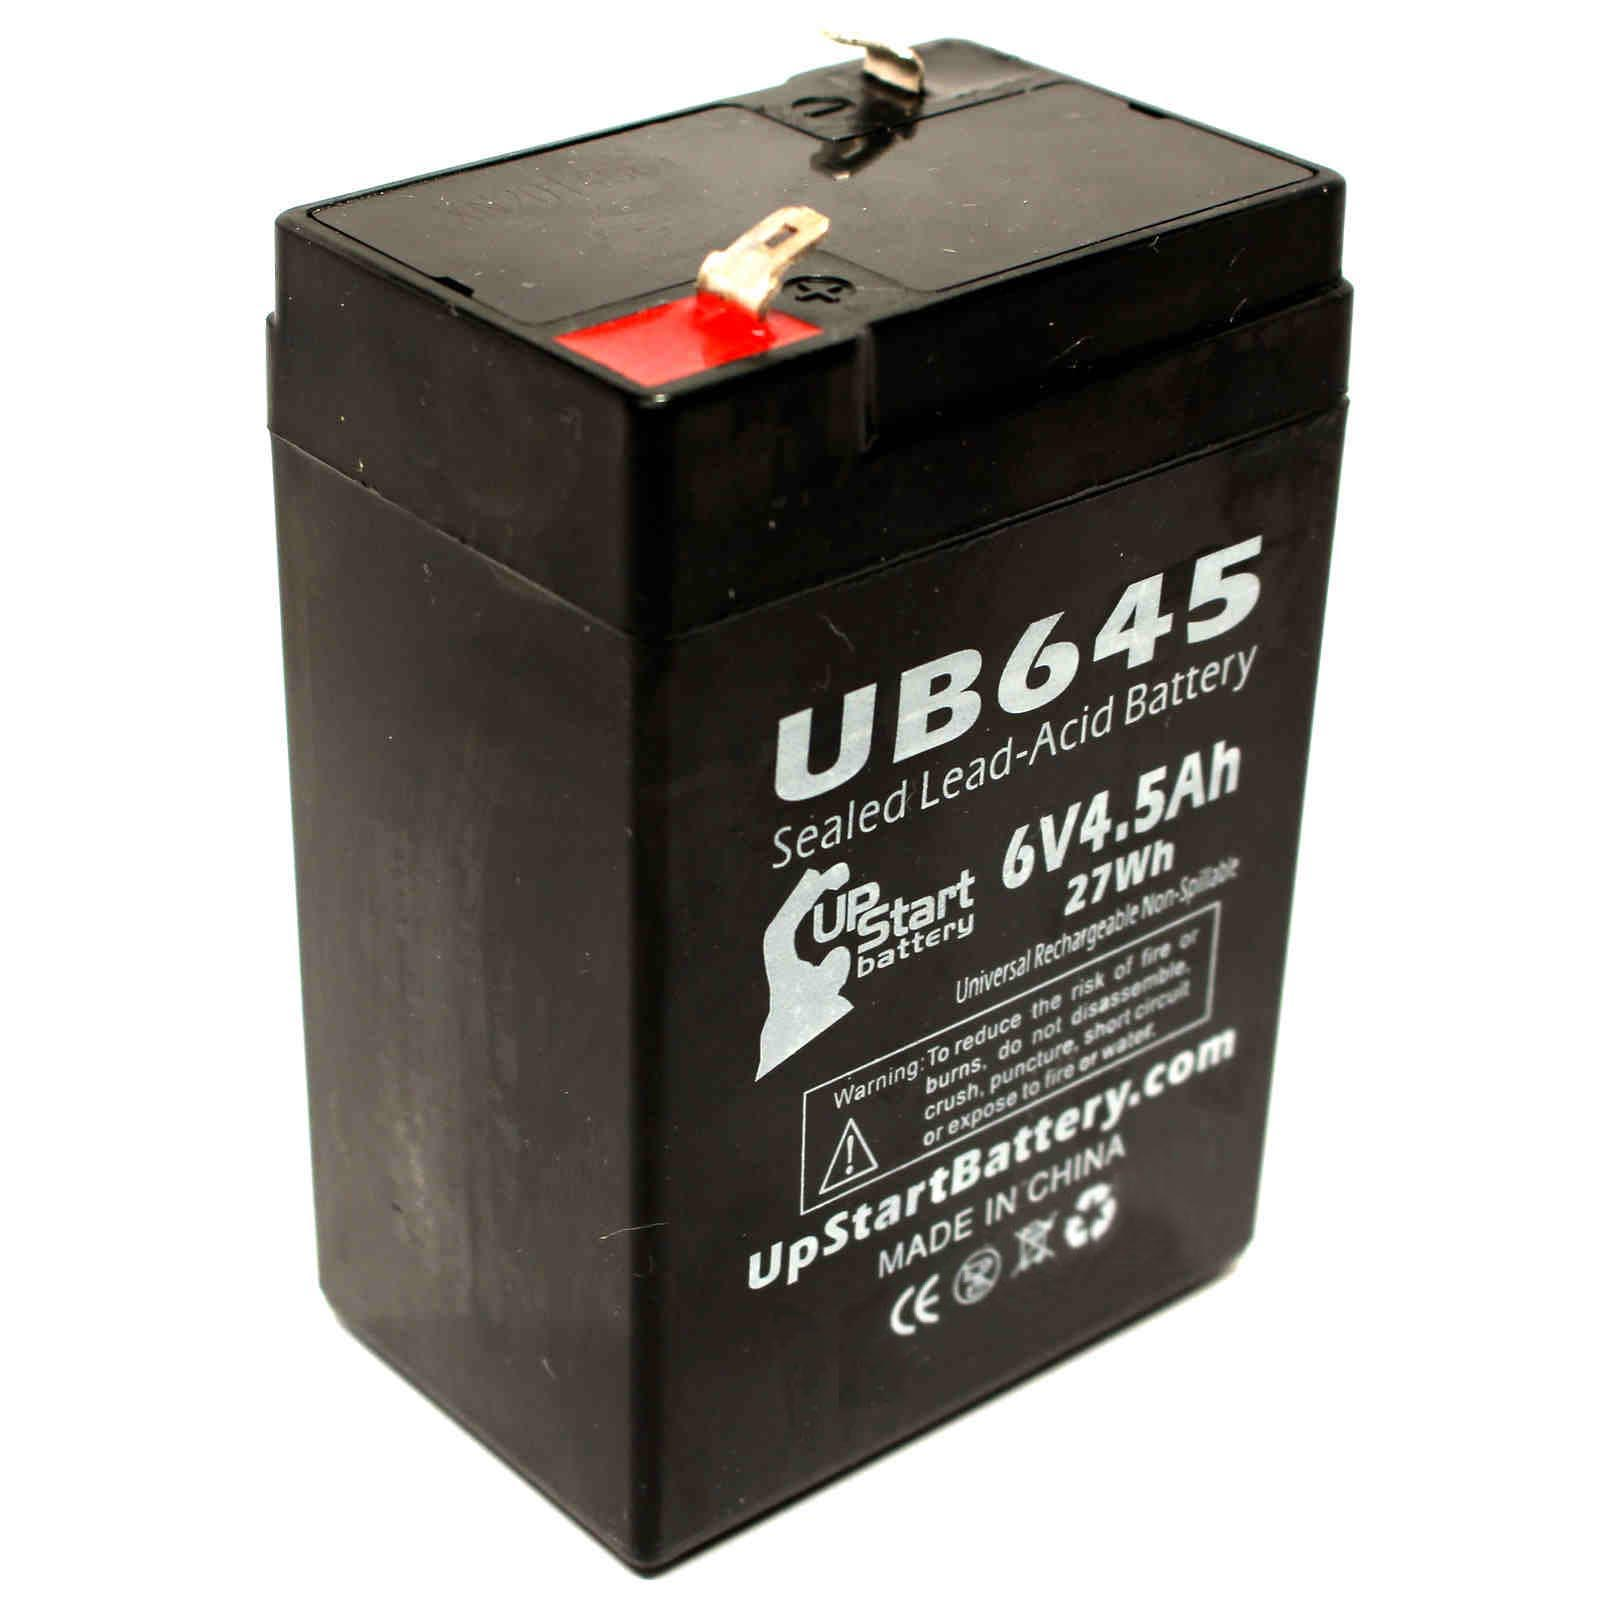 Power Patrol SLA0905 Battery Replacement - UB645 Universal Sealed Lead Acid Battery (6V, 4.5Ah, 4500mAh, F1 Terminal, AGM, SLA) - Includes TWO F1 to F2 Terminal Adapters - image 4 de 4